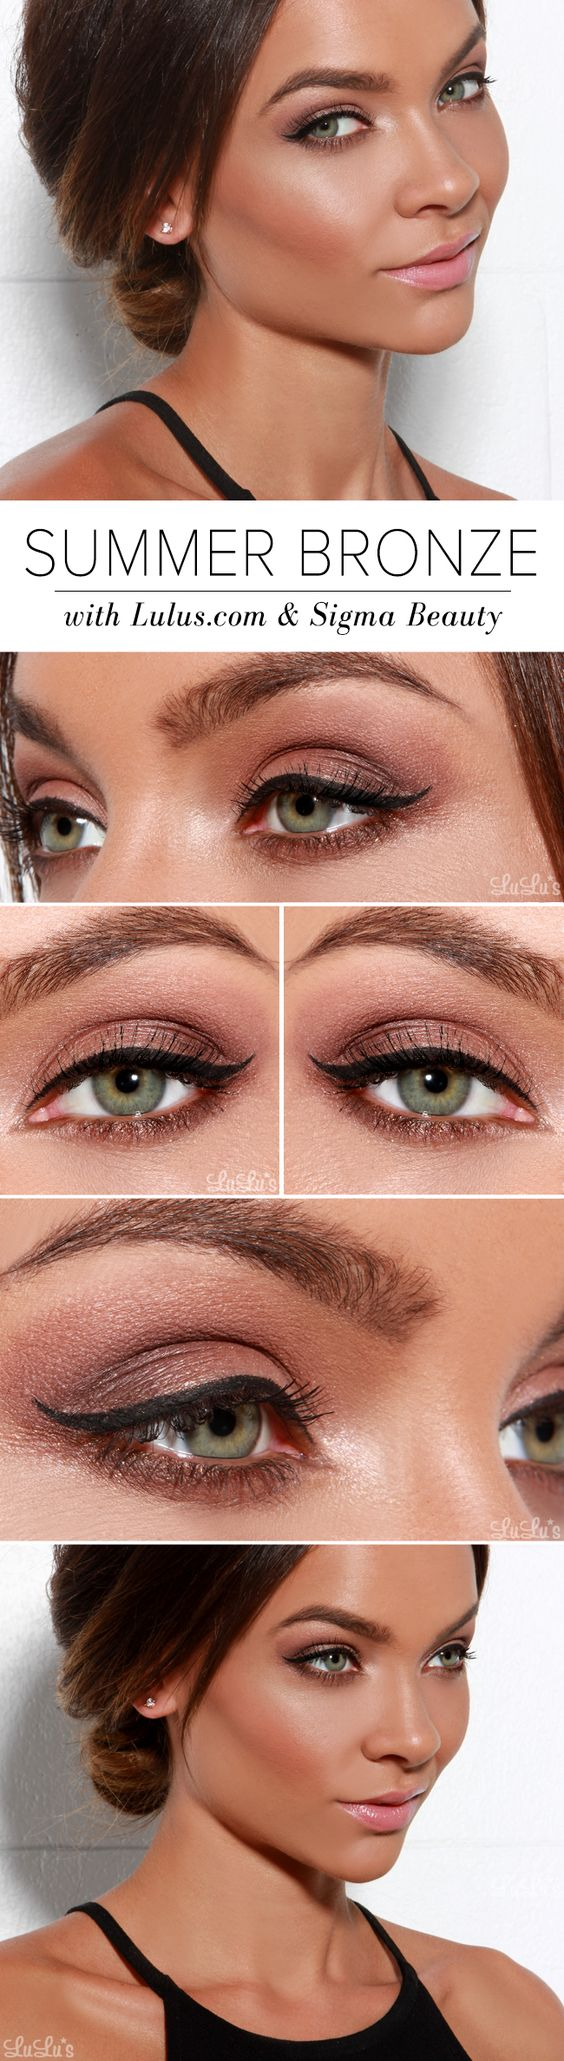 Summer bronze make up tutorial